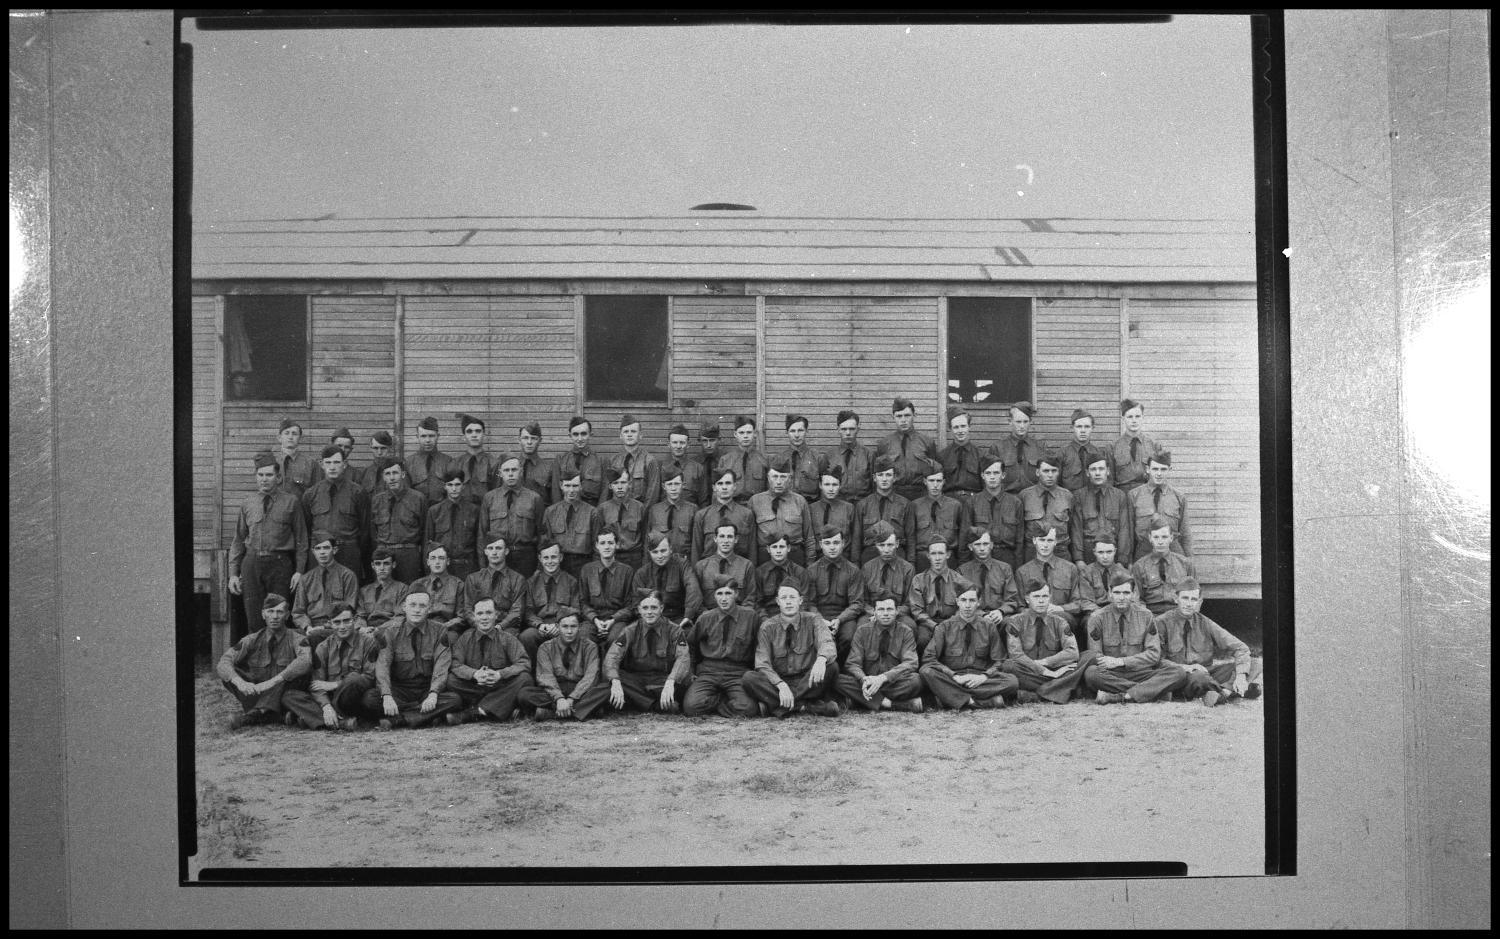 Cherokee County Historical Society. [Civilian Conservation Corps], photograph, September 18, 1988; (texashistory.unt.edu/ark:/67531/metapth354300/: accessed March 11, 2019), University of North Texas Libraries, The Portal to Texas History, texashistory.unt.edu; crediting Cherokee County Historical Commission.